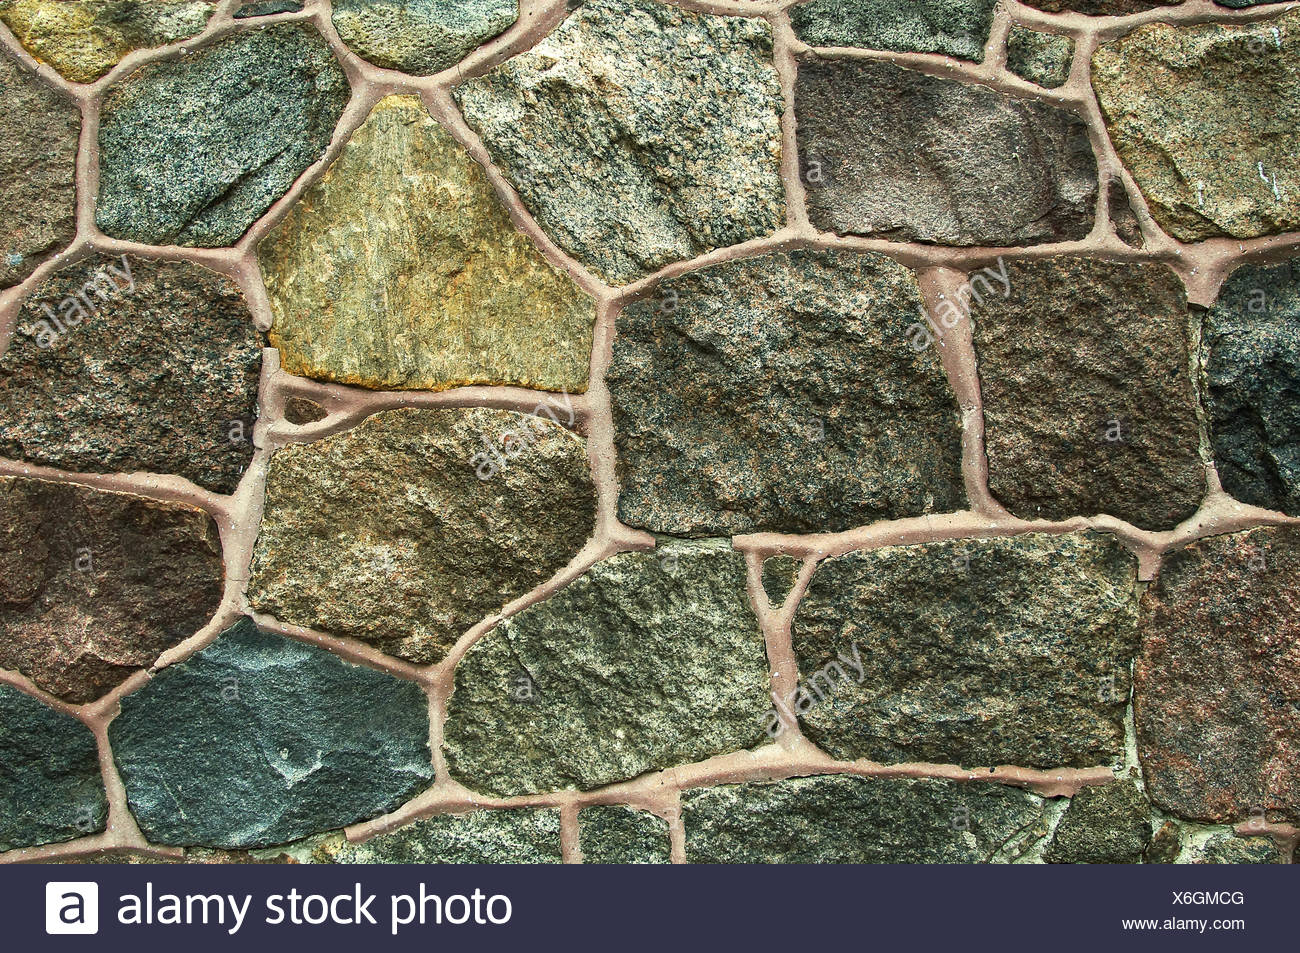 feldsteinmauer / fieldstone wall stock photo: 279421088 - alamy